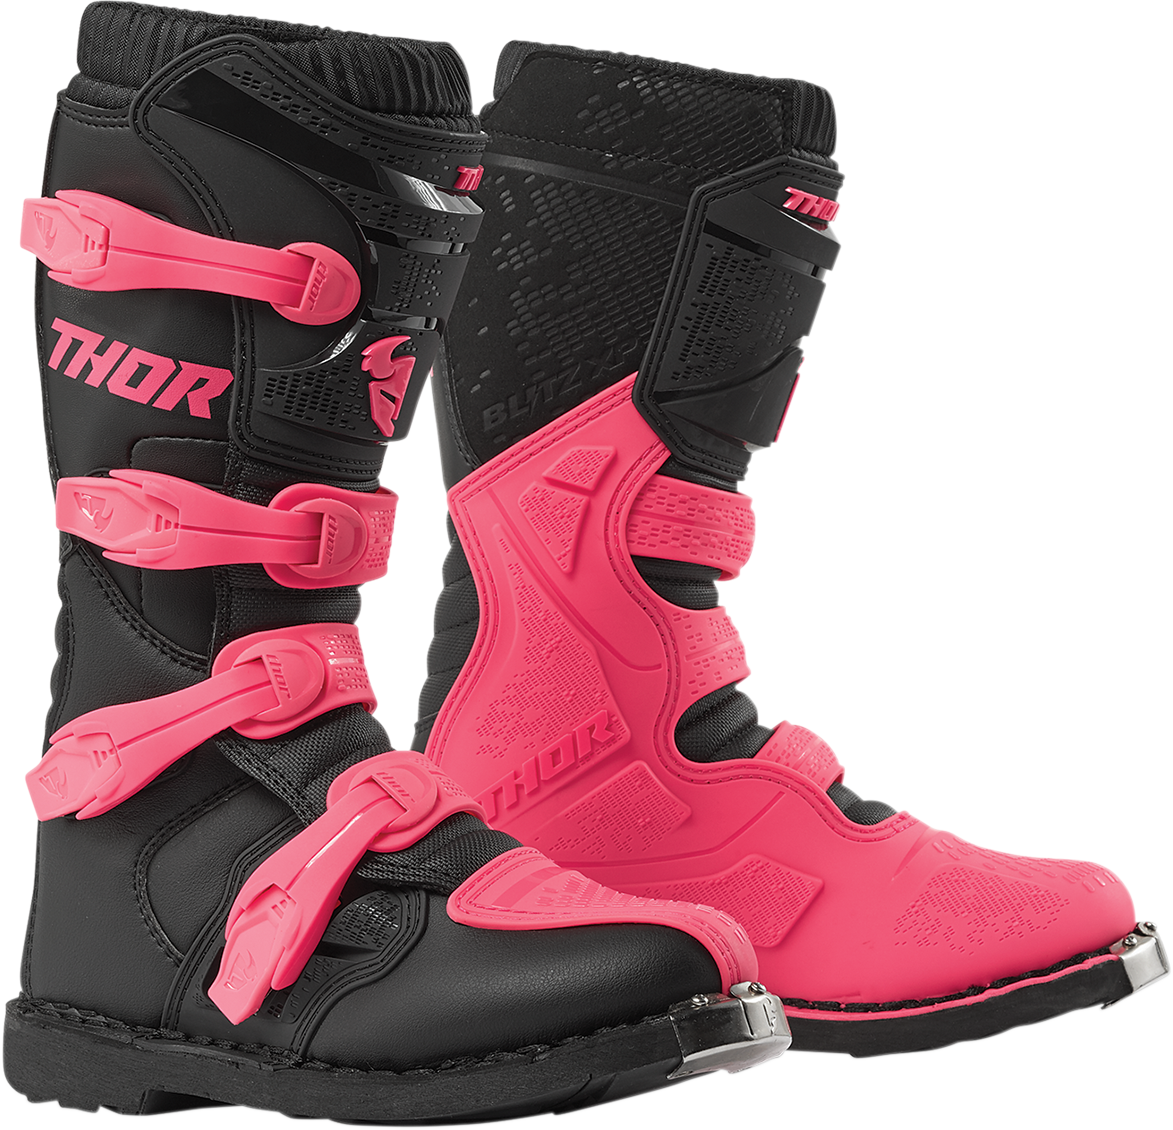 Thor Womens Pair Blitz XP Textile Offroad Riding Dirt Bike Racing Boots